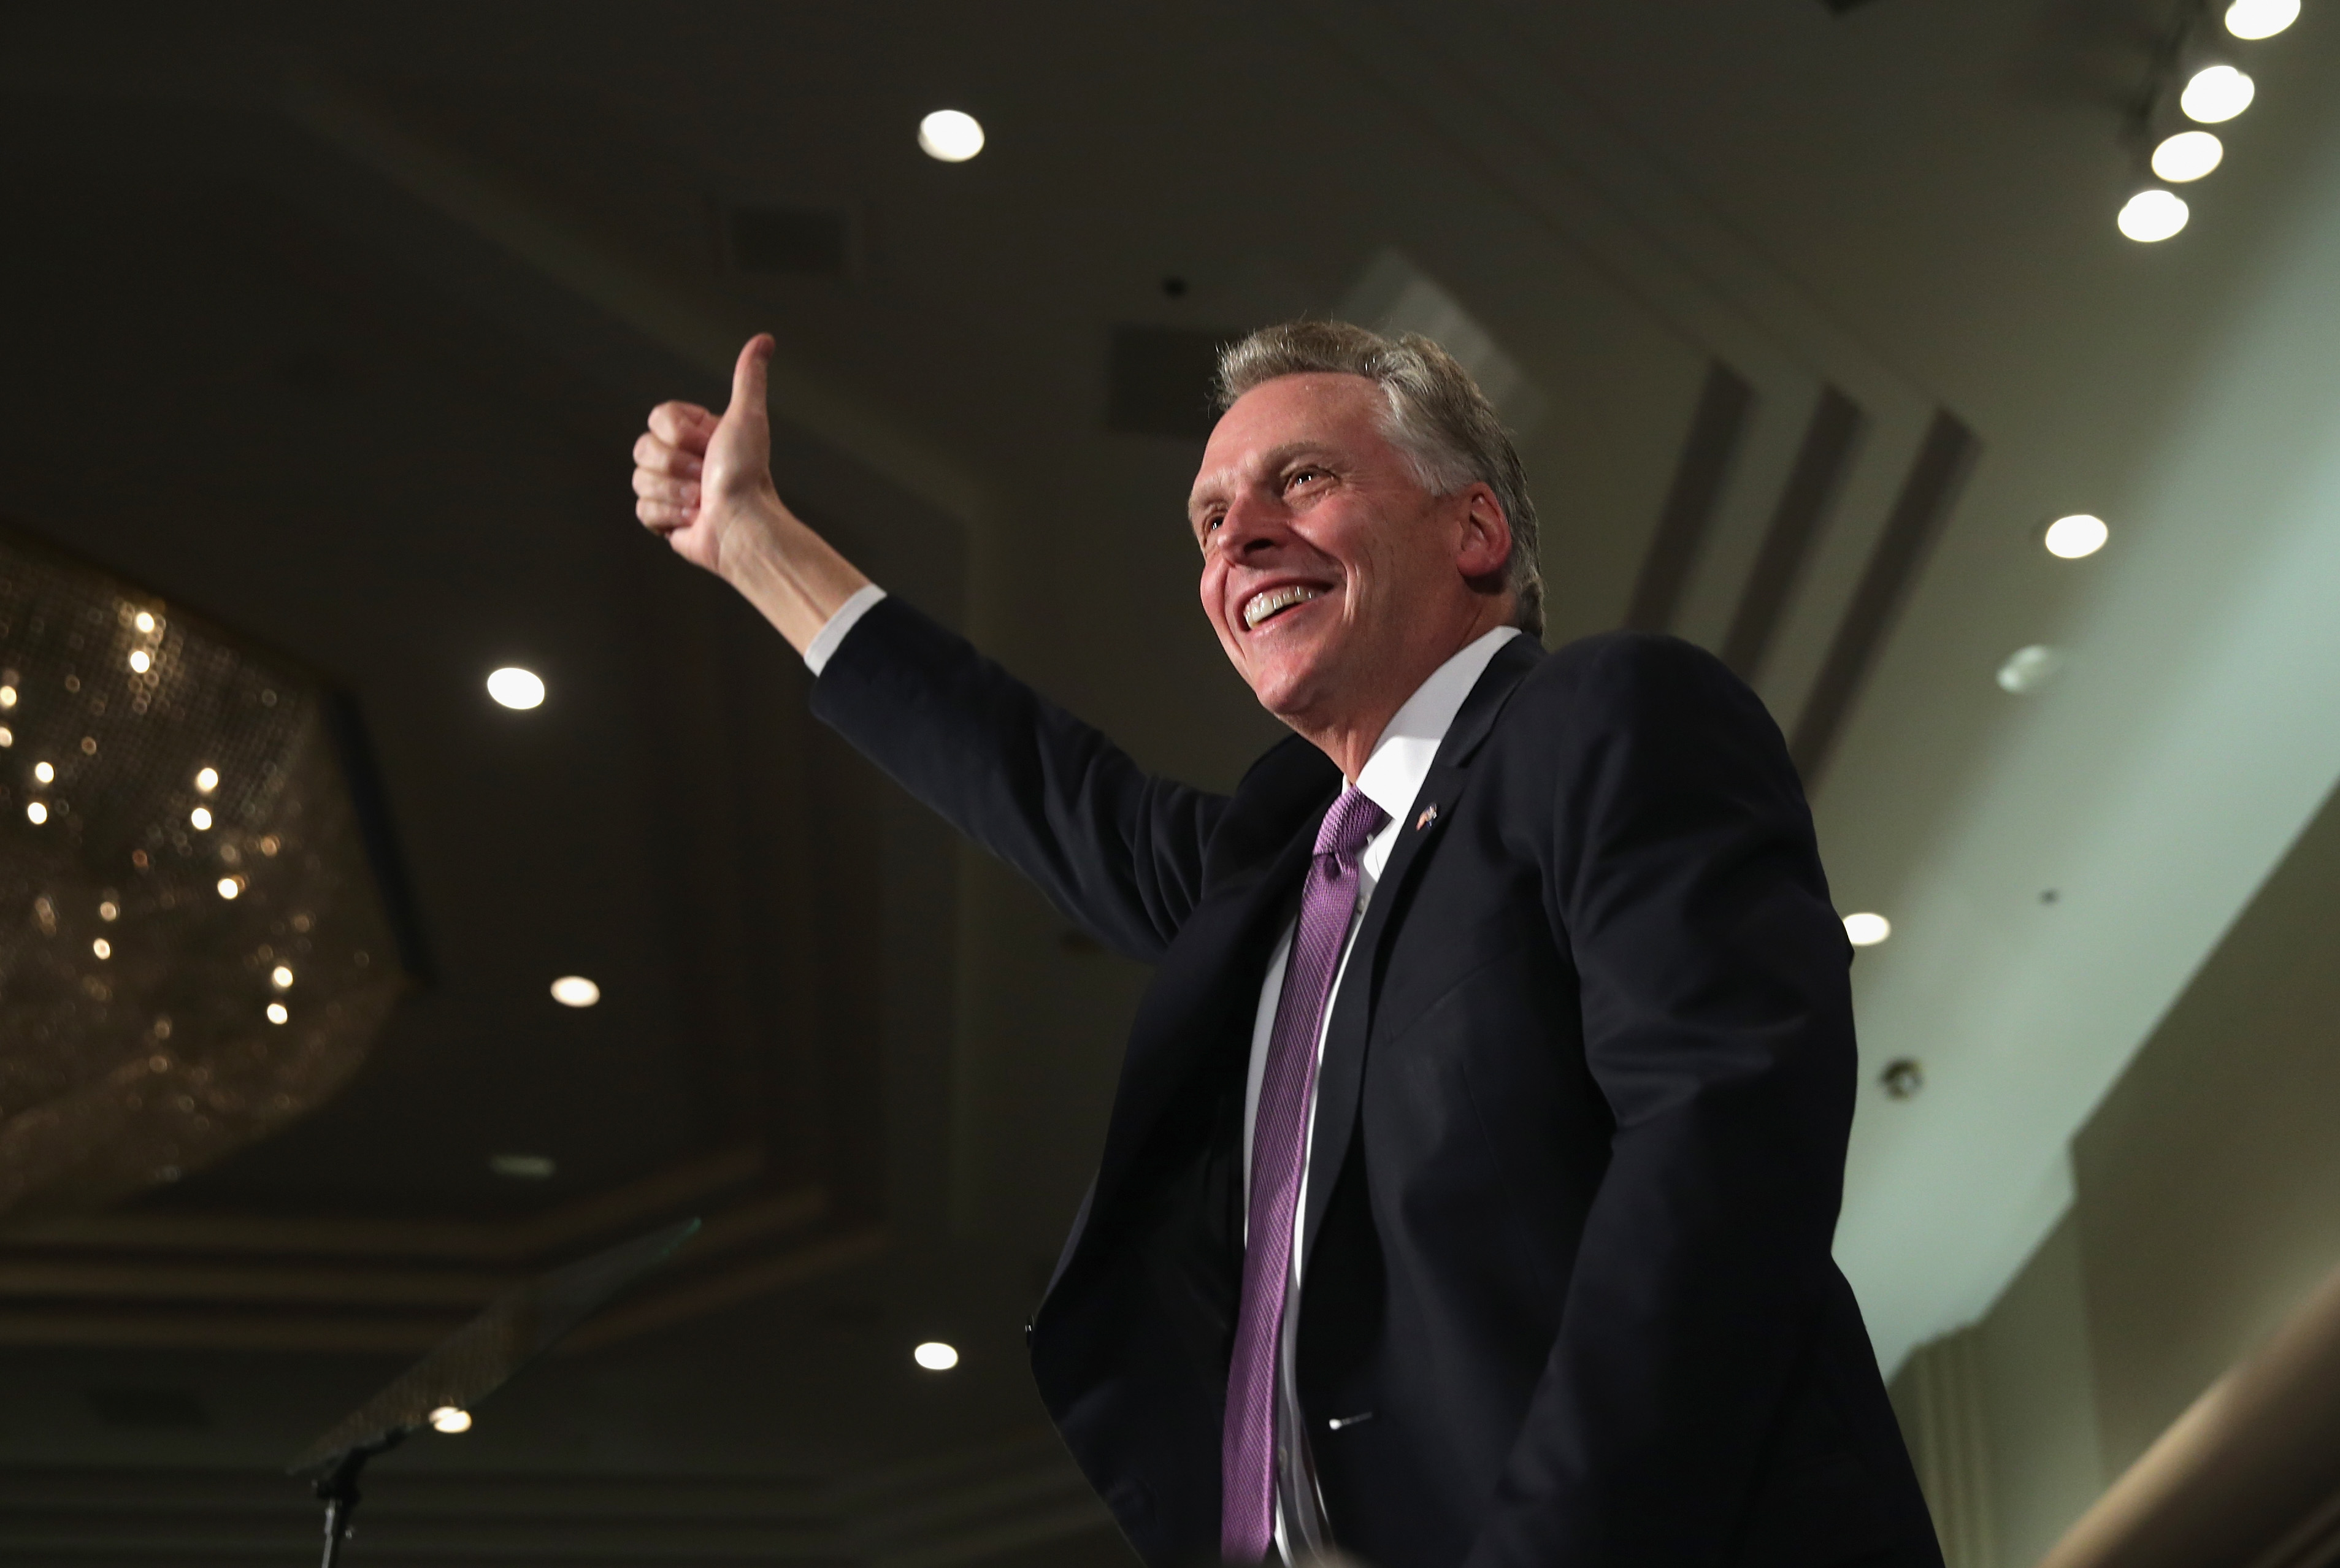 Democrat Terry McAuliffe celebrates winning the Virginia governorship at an election-night party at the Sheraton Premiere Hotel November 5, 2013 in Tysons Corner, Virginia. McAuliffe defeated Republican state Attorney General Ken Cuccinelli.  (Alex Wong/Getty Images/AFP)